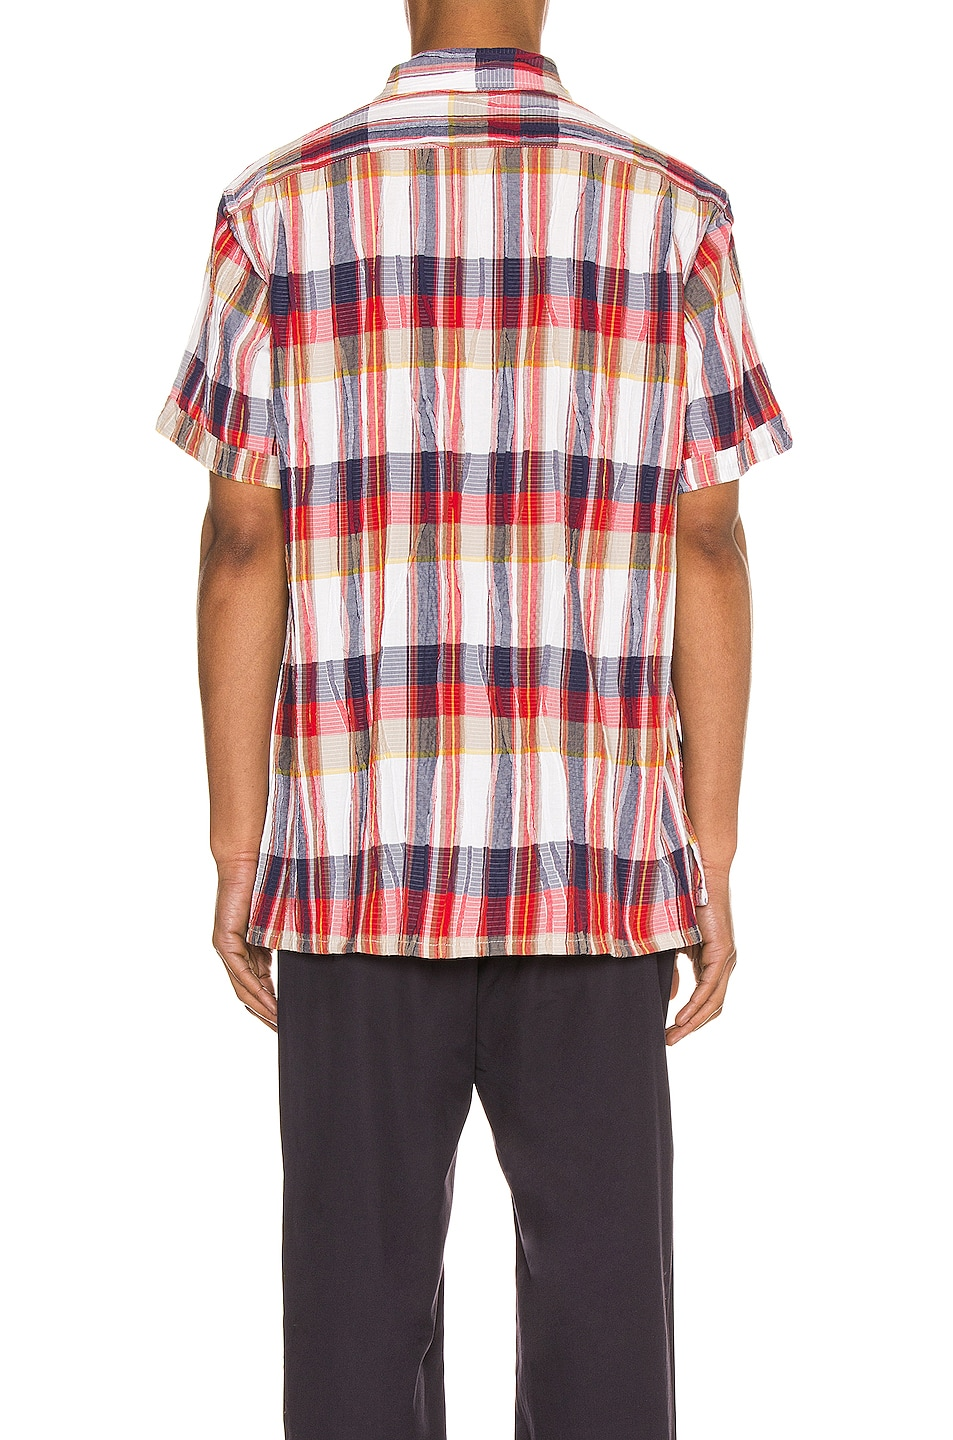 Image 3 of Engineered Garments Camp Shirt in Red & White Cotton Crepe Check